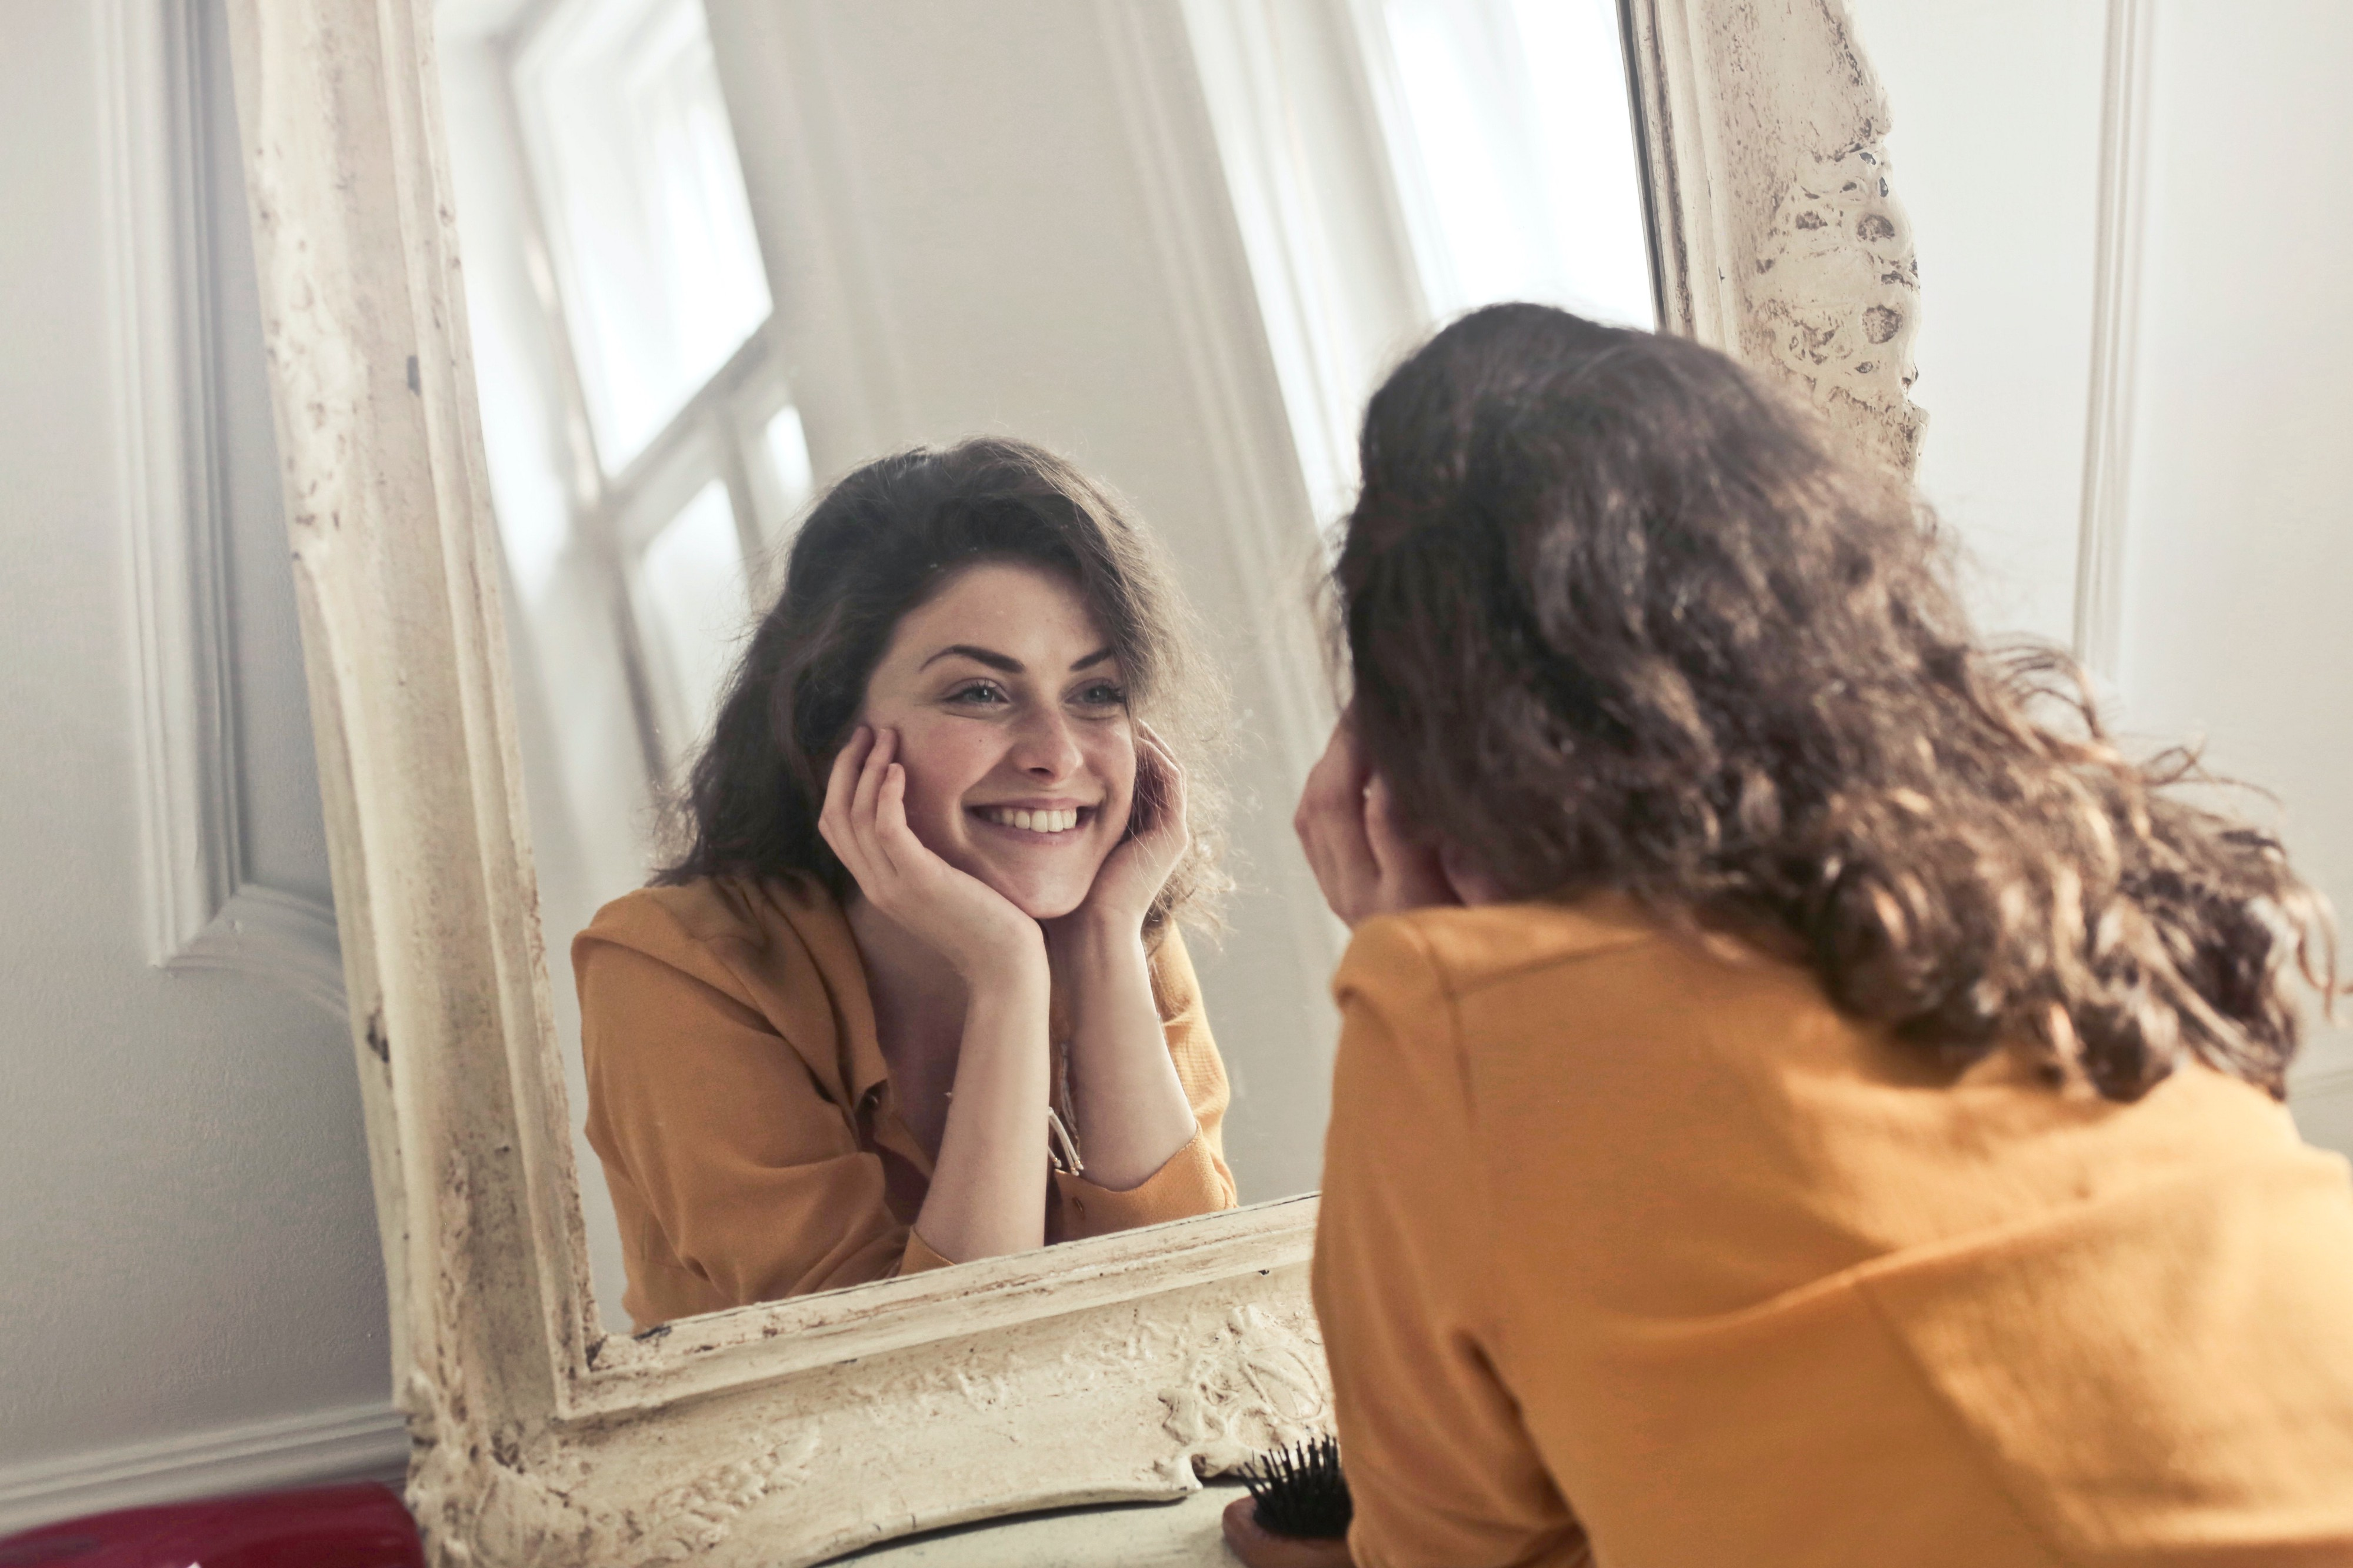 A woman smiles into a mirror.